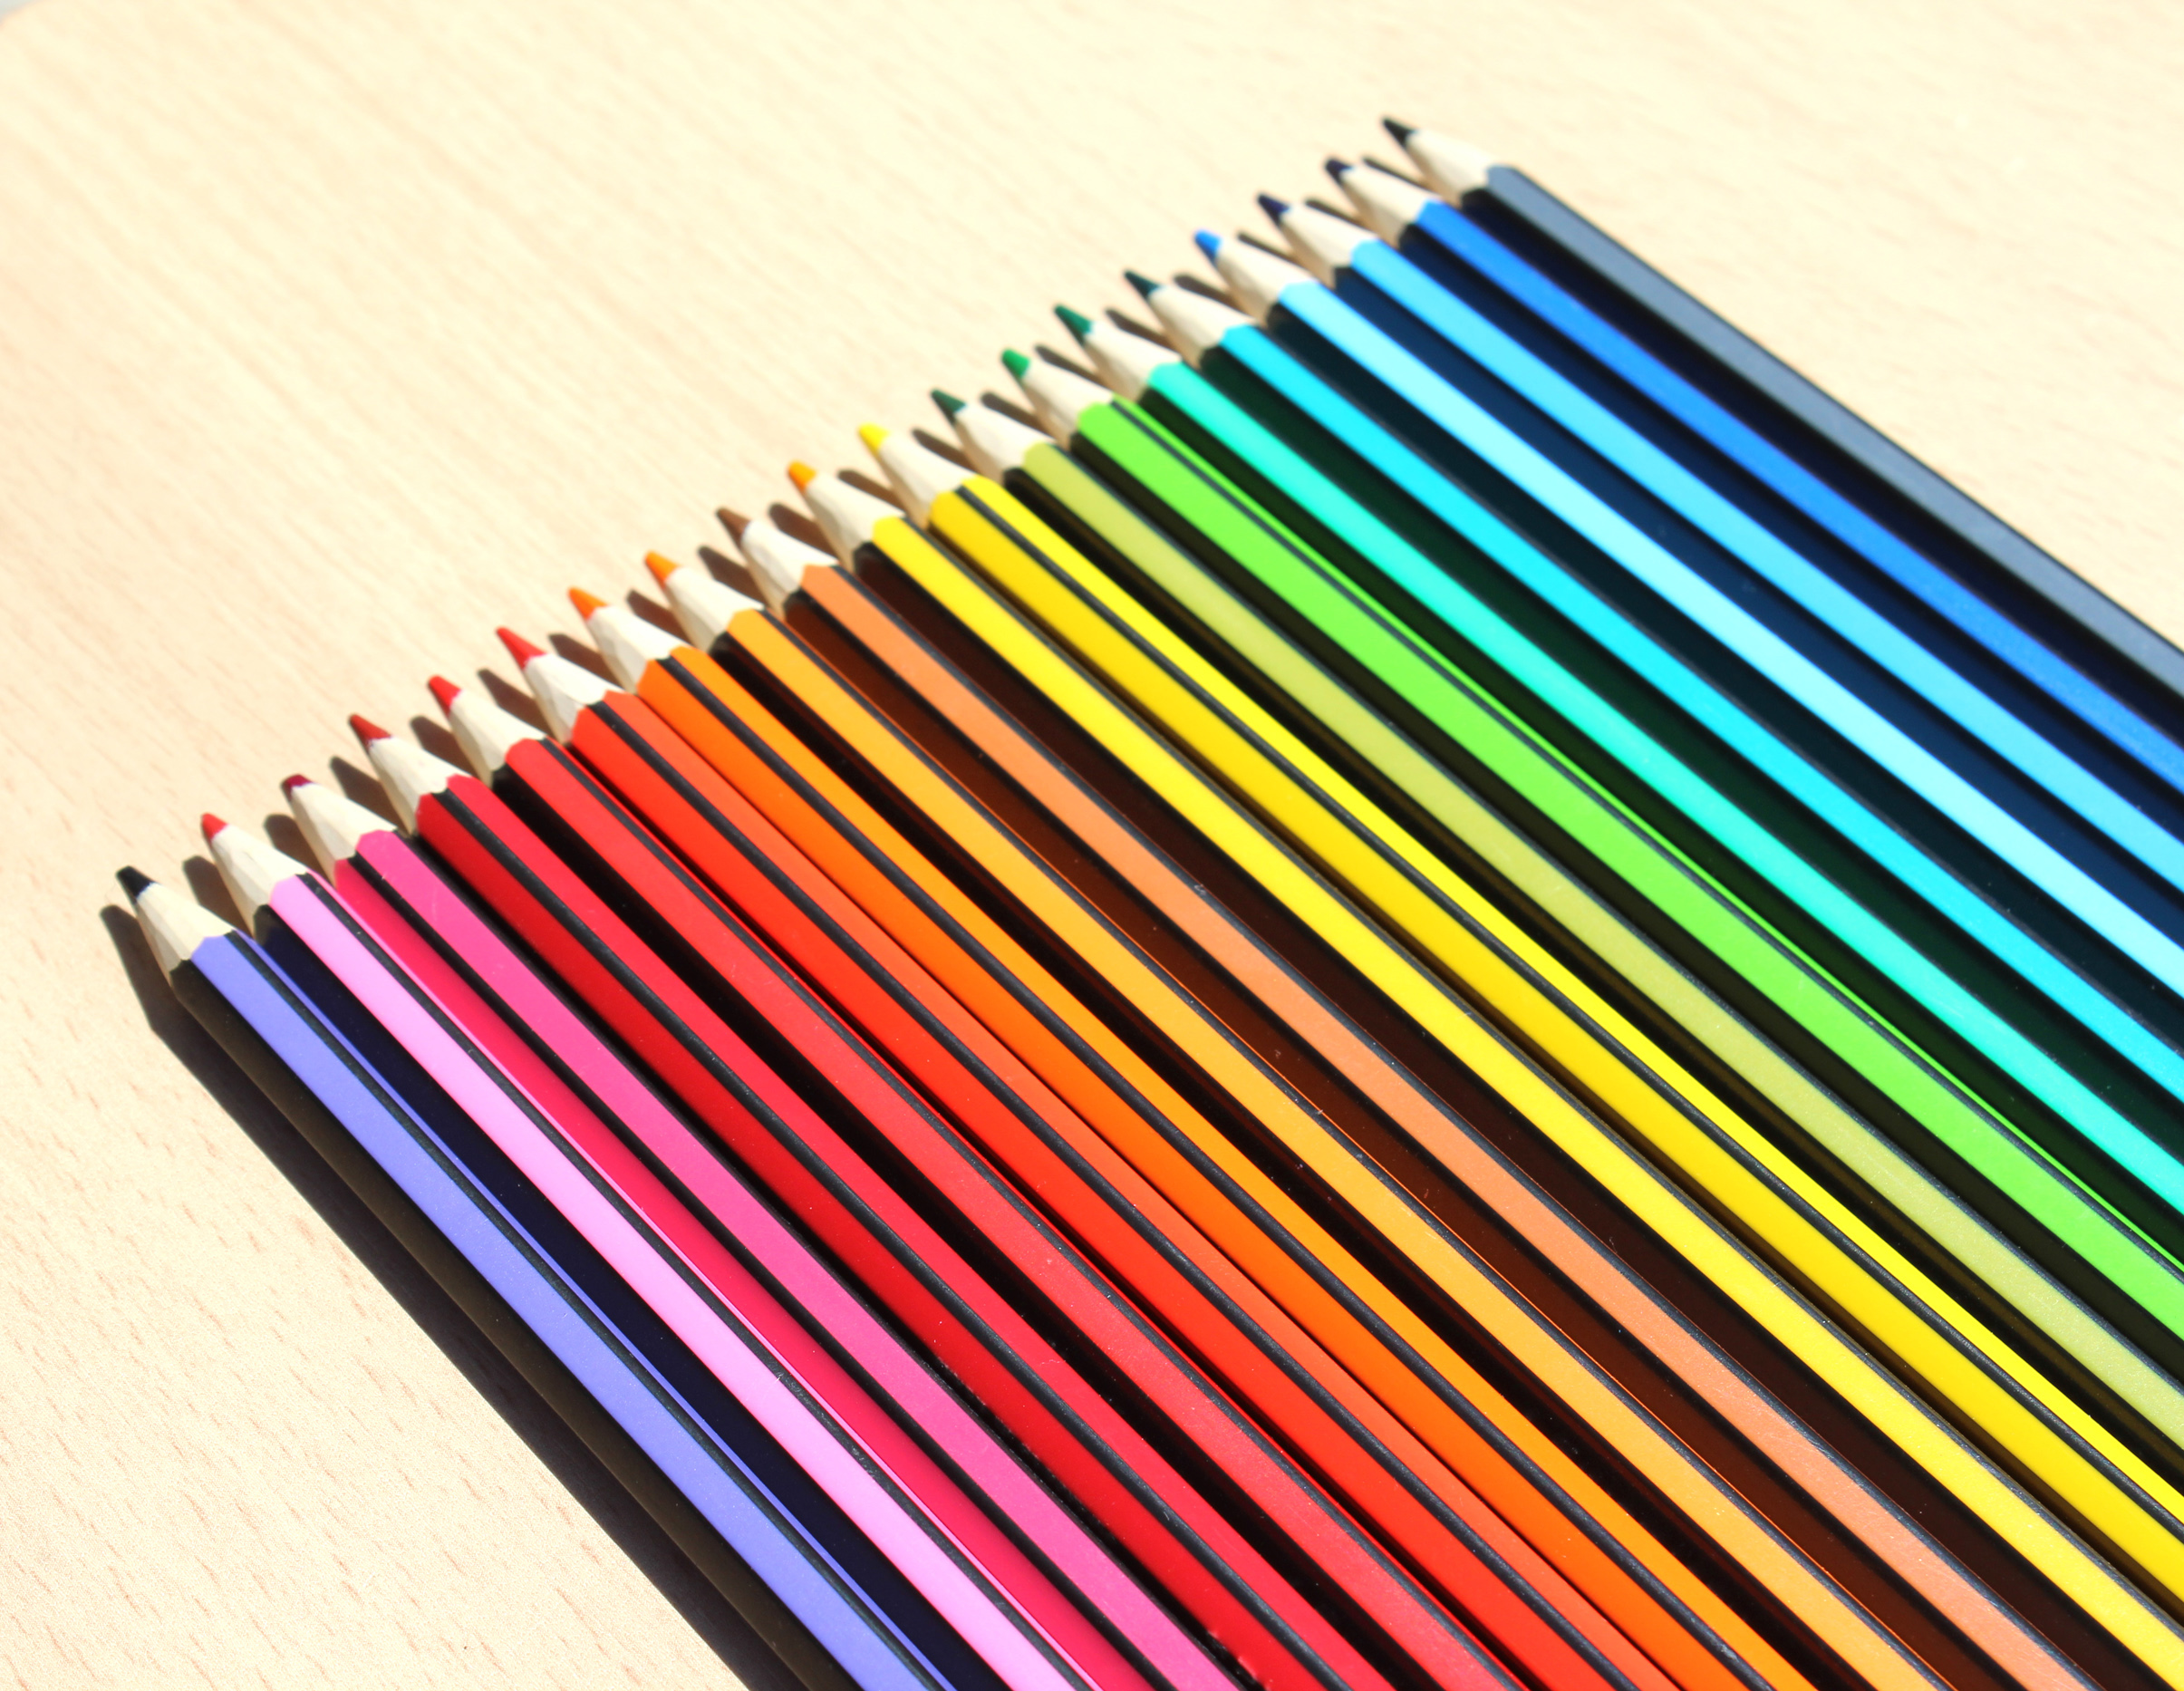 Color Pencil Set, Abstract, School, Nobody, Object, HQ Photo